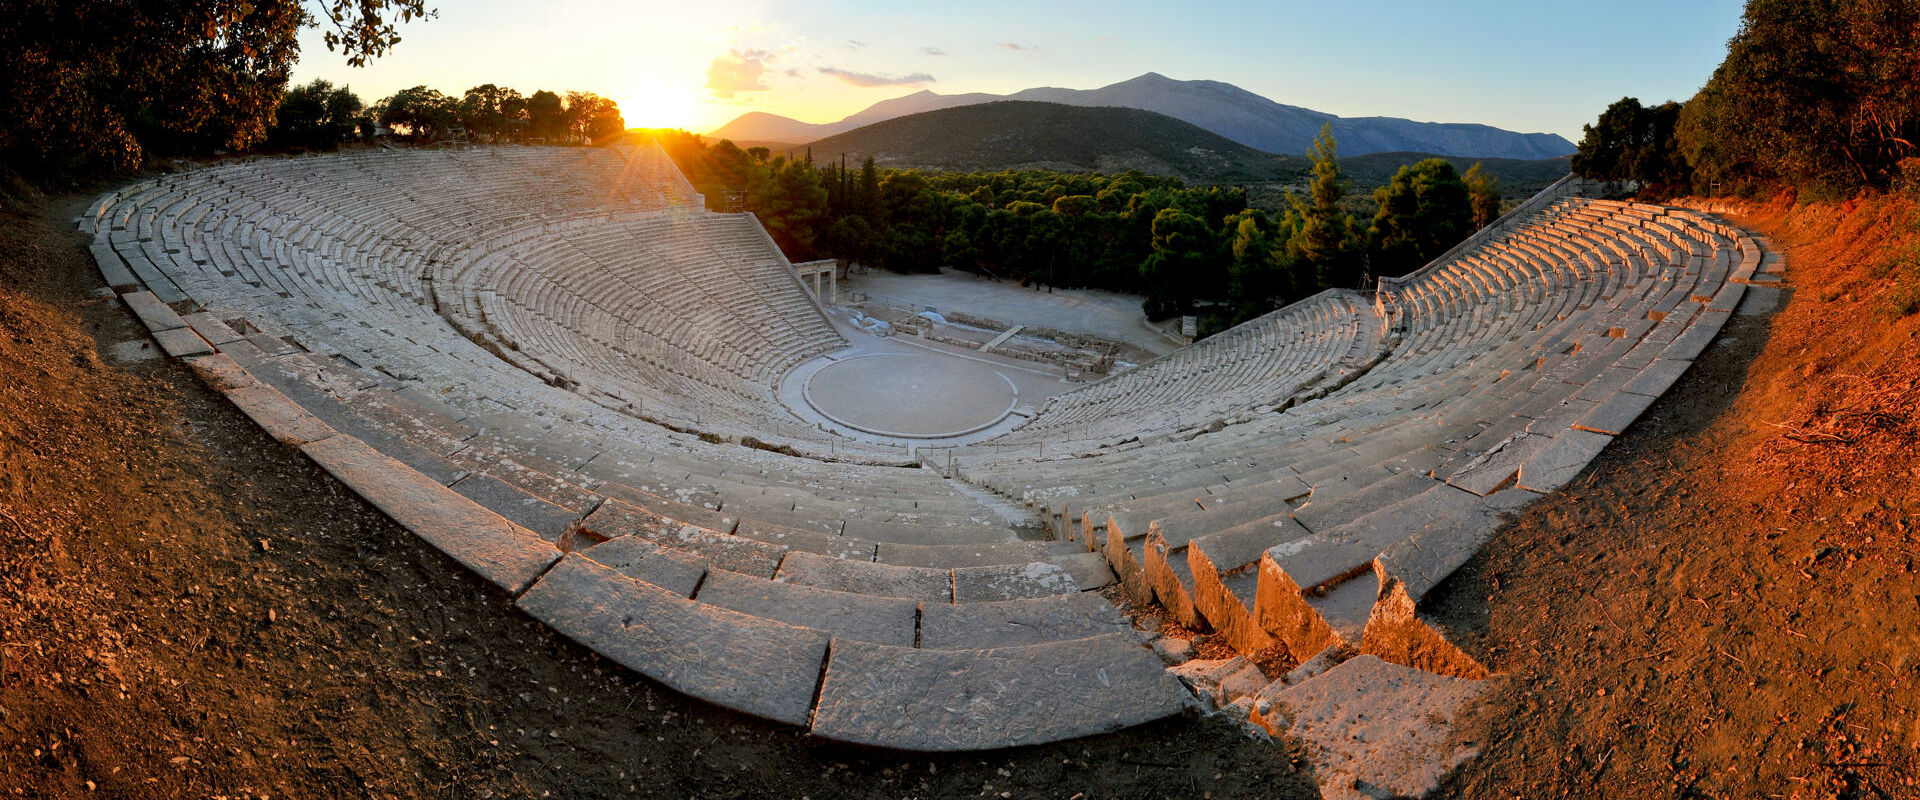 Epidaurus, the oldest theater in ancient Greece